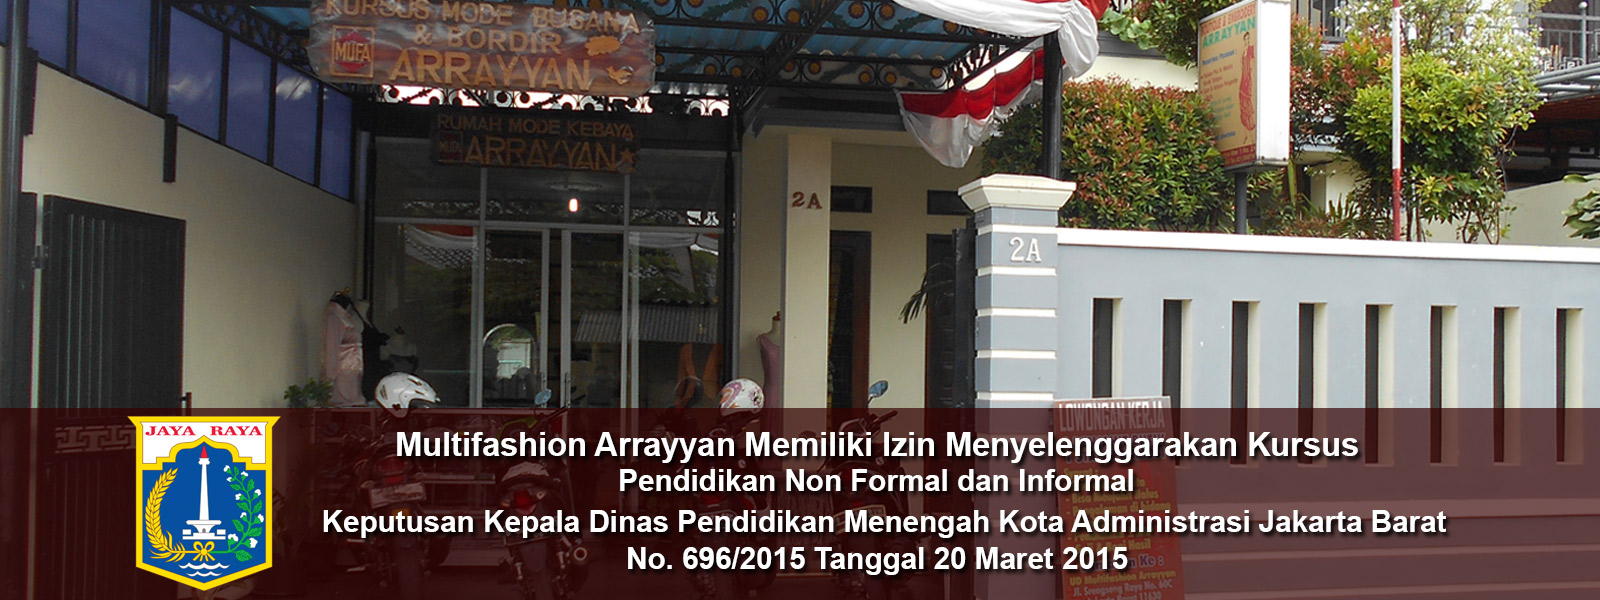 Arrayyan Fashion Kursus